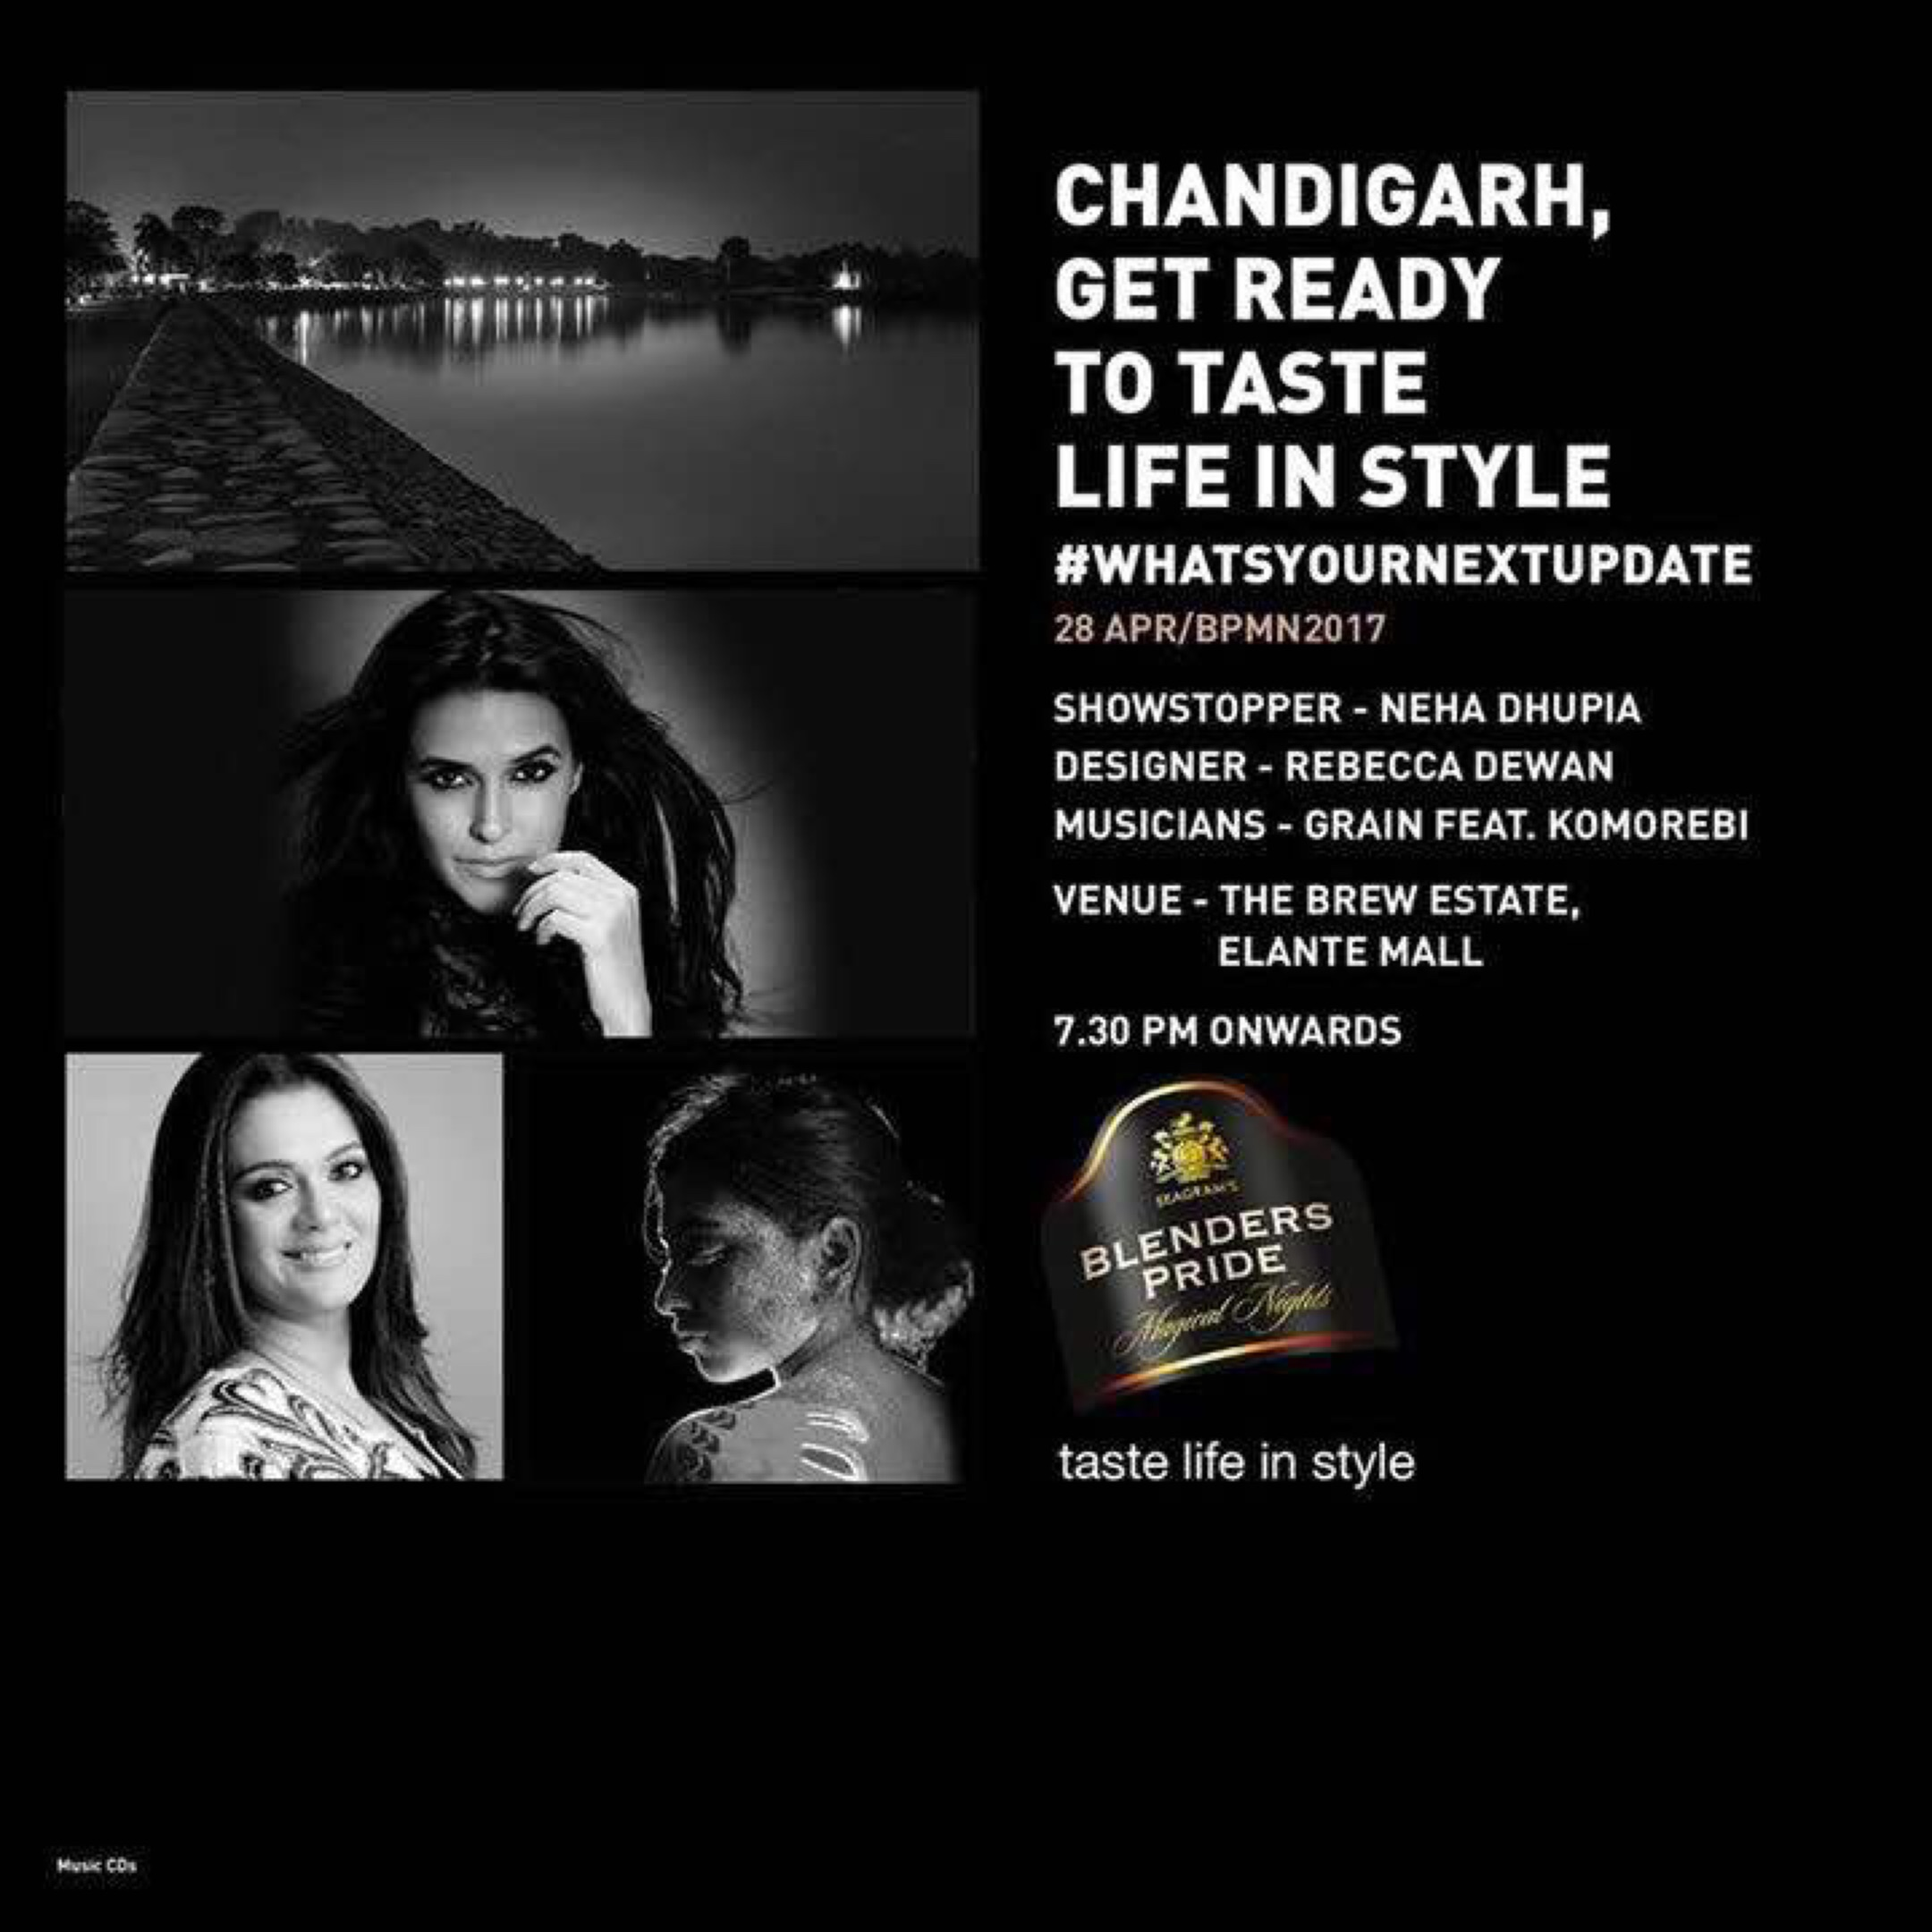 Rebecca Dewan & Blenders Pride Magical Nights's going to bring contemporary fashion, thrilling music & the best of glamour to your city Chandigarh.  Be there to get swayed by the overwhelming magic !!!  #tastelifeinstyle #bpft #whatsyournextupdate  #nehadhupia #KOMOREBI #fashionatitsbest #stylematters #royalwomen #womanpower #staytuned